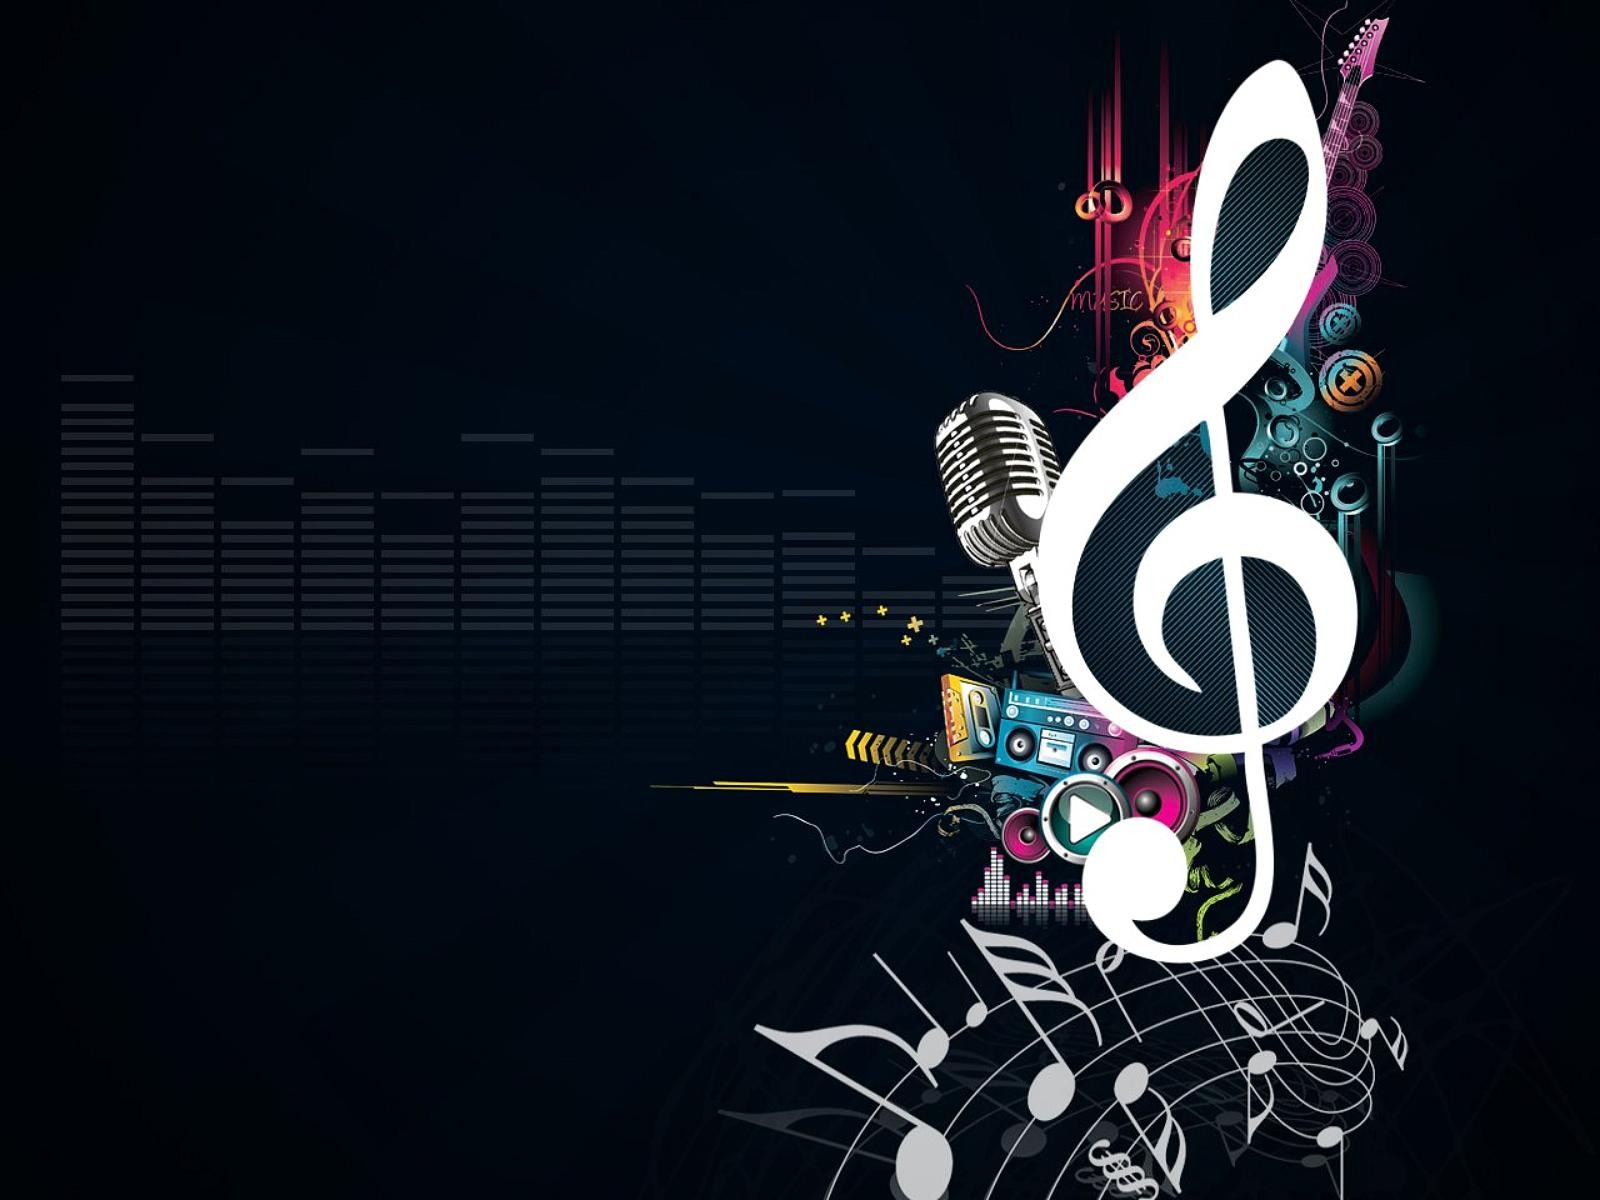 Music Hd Pic Anime Music And Japanese Music Images Music Hd Wallpaper And